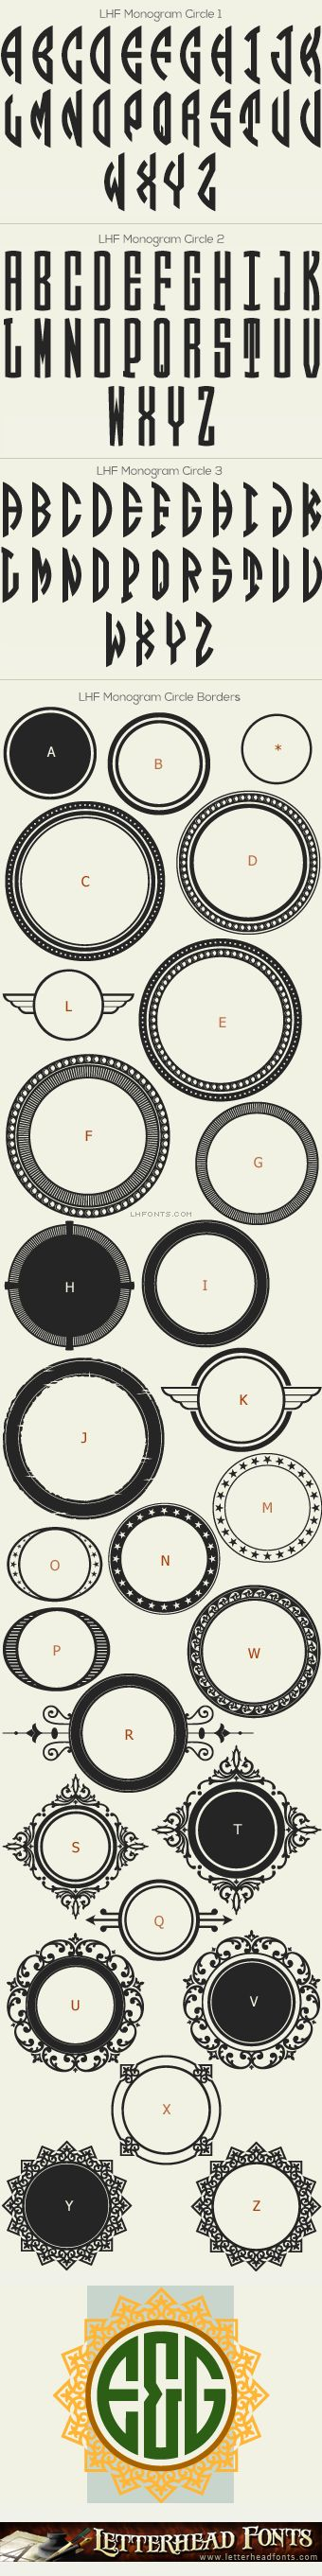 Letterhead Fonts / LHF Monogram Circle font set / Monogram Fonts